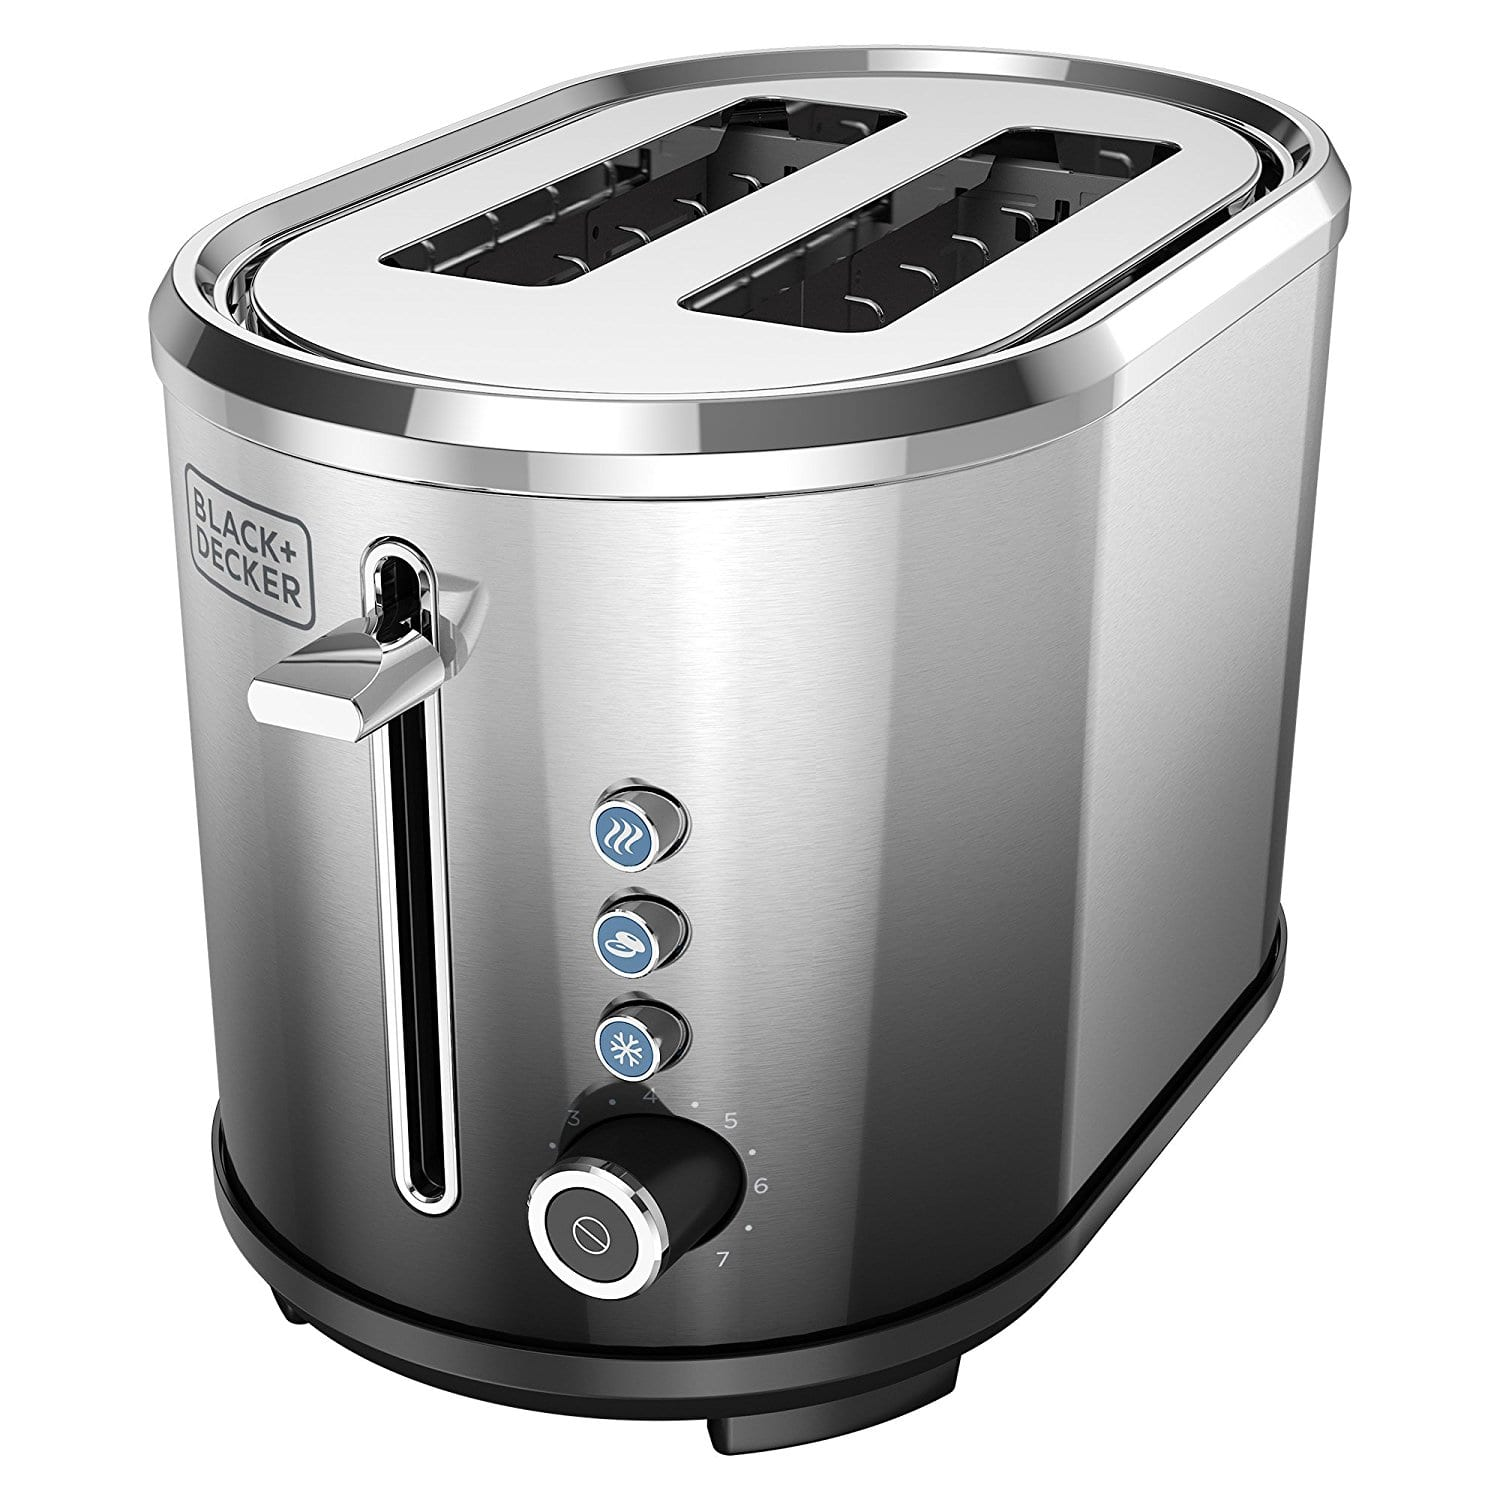 Best Toasters 2017: Black & Decker Wide Slot 2 Slice Toaster Review 2018